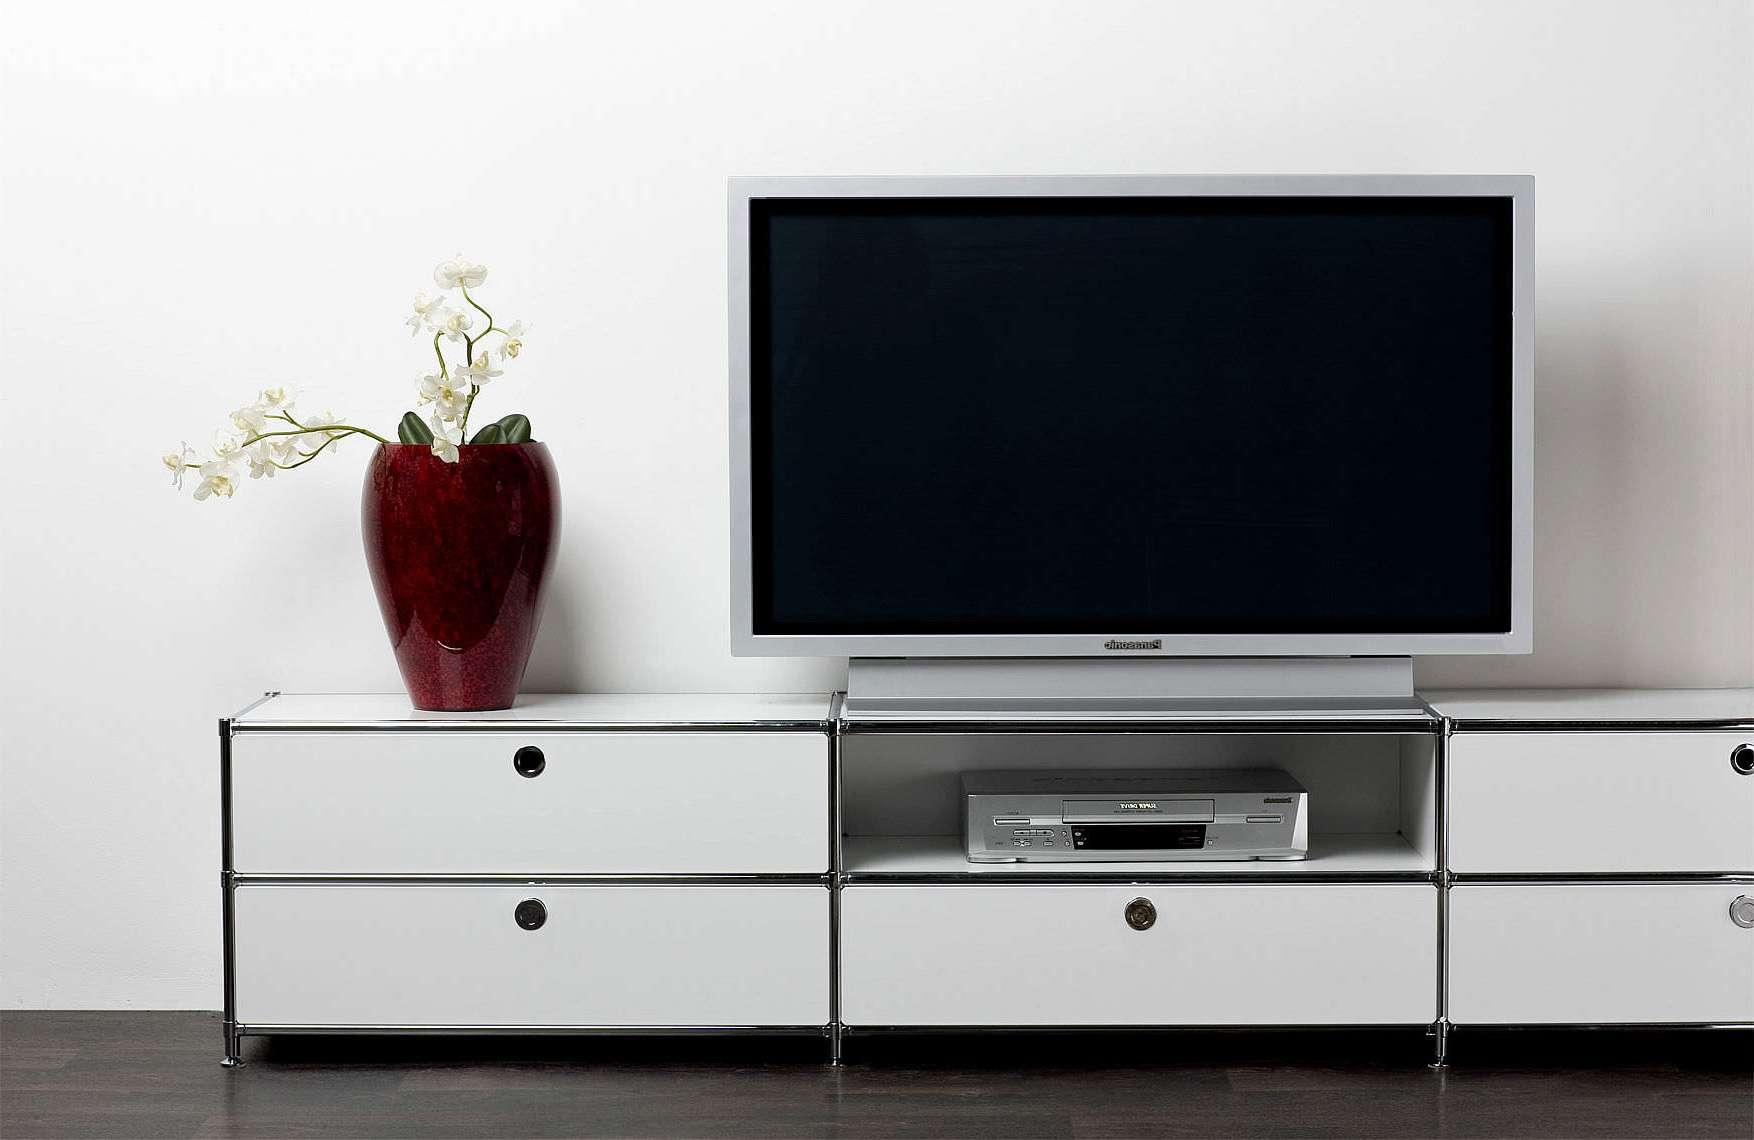 White Wooden Tv Cabinet With Drawers And Rack Also Stainless Steel Regarding Tv Cabinets With Drawers (View 19 of 20)